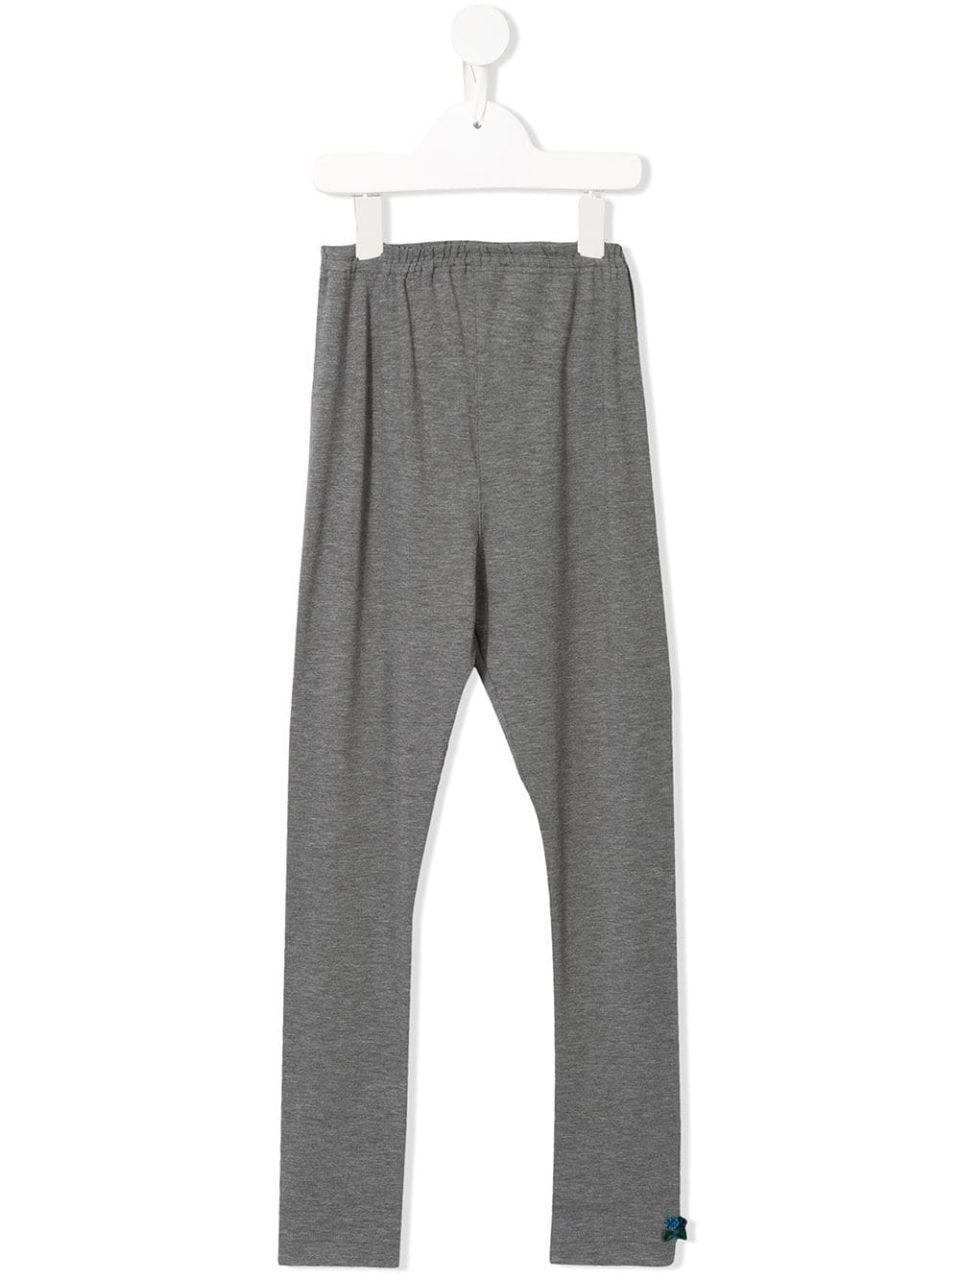 CharmPosh-x-Farfetch-Girls-Designer-Clothes-Familiar-Relaxed-Fit-Bow-Detail-Trousers-CharmPosh